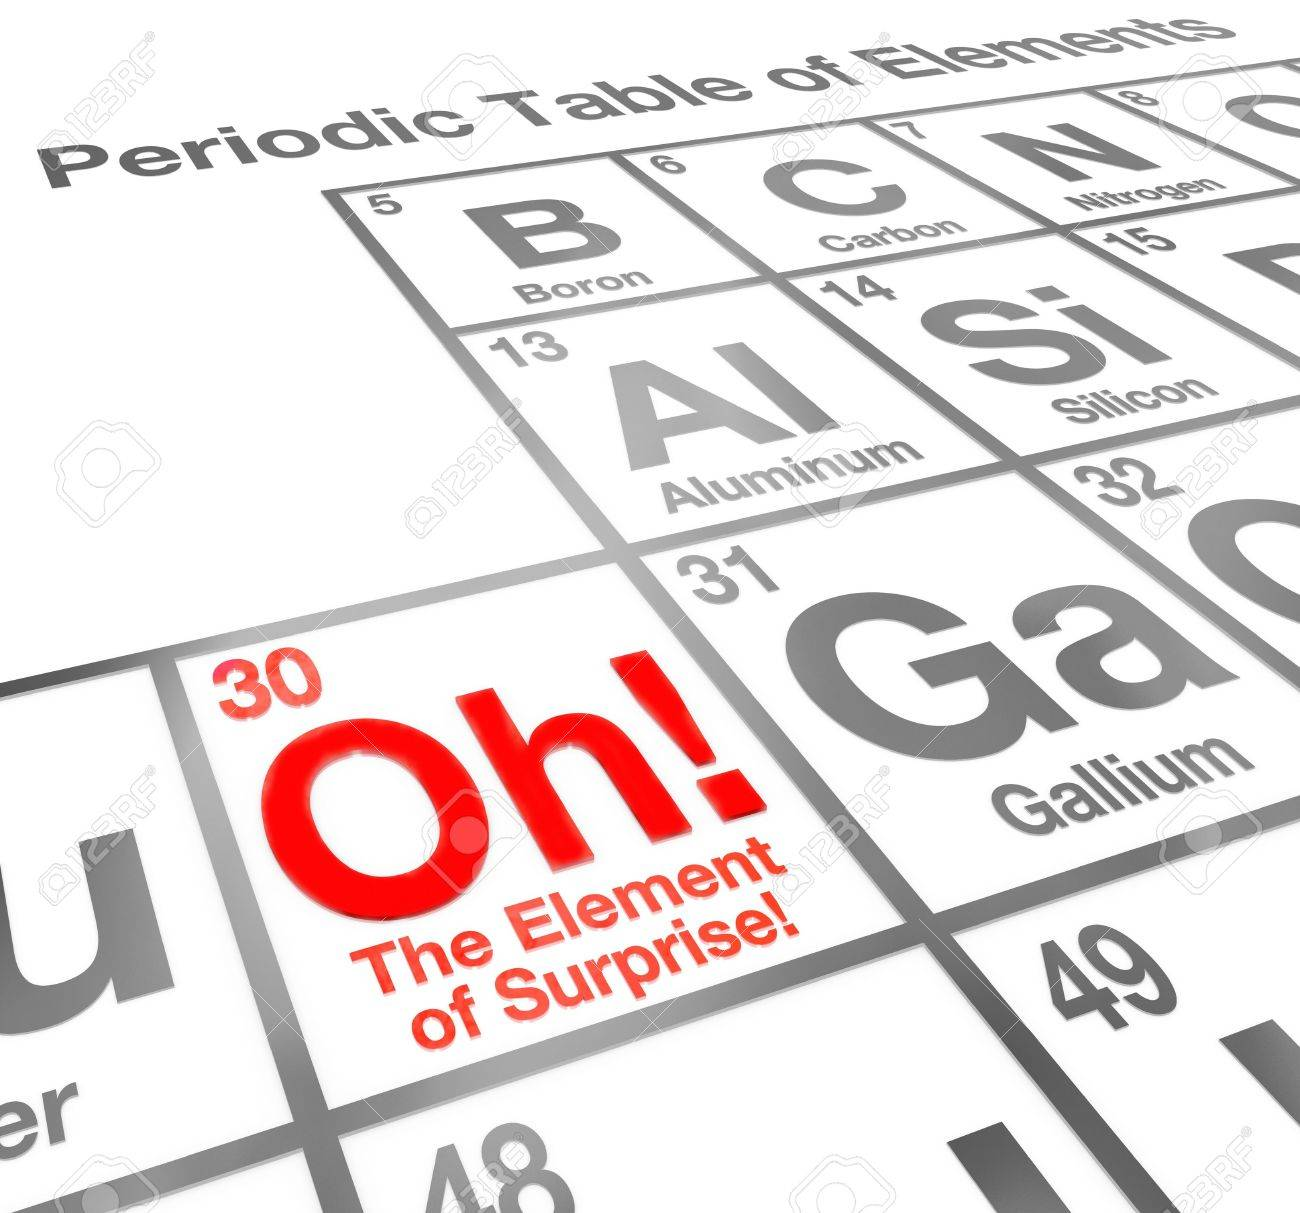 The words element of surprise on a periodic table of chemical the words element of surprise on a periodic table of chemical elements to illustrate something that gamestrikefo Gallery